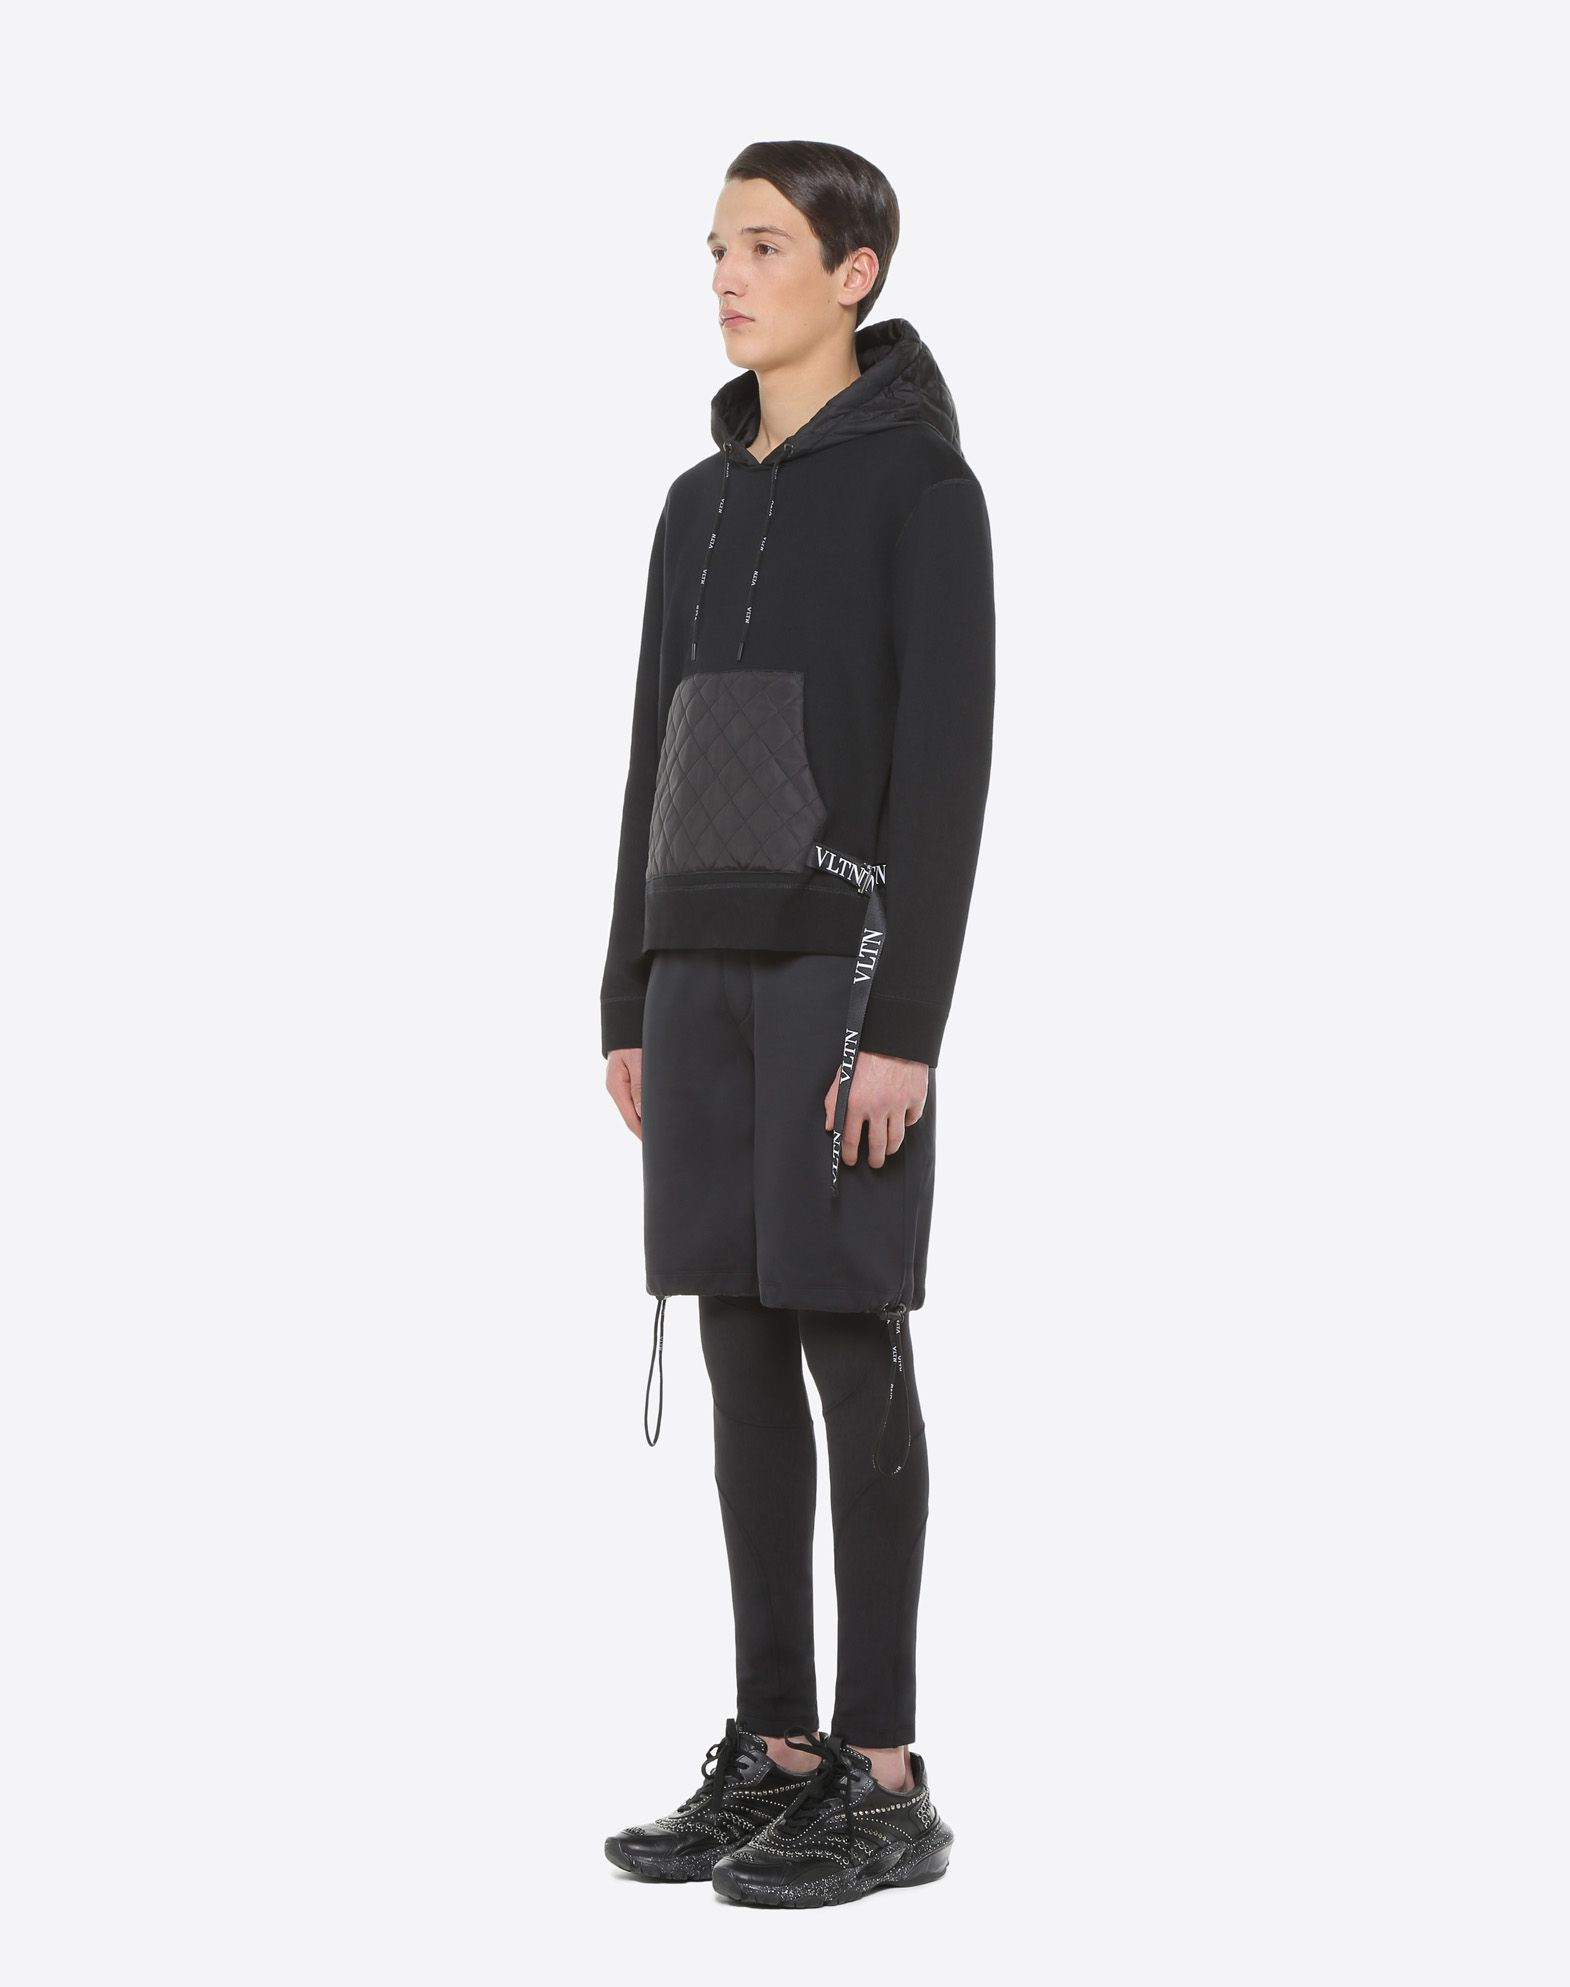 VALENTINO Logo Strap detailing Quilted Techno fabric Sweatshirt fleece Solid colour Round collar Single pocket French Terry lining Long sleeves  12177570ns